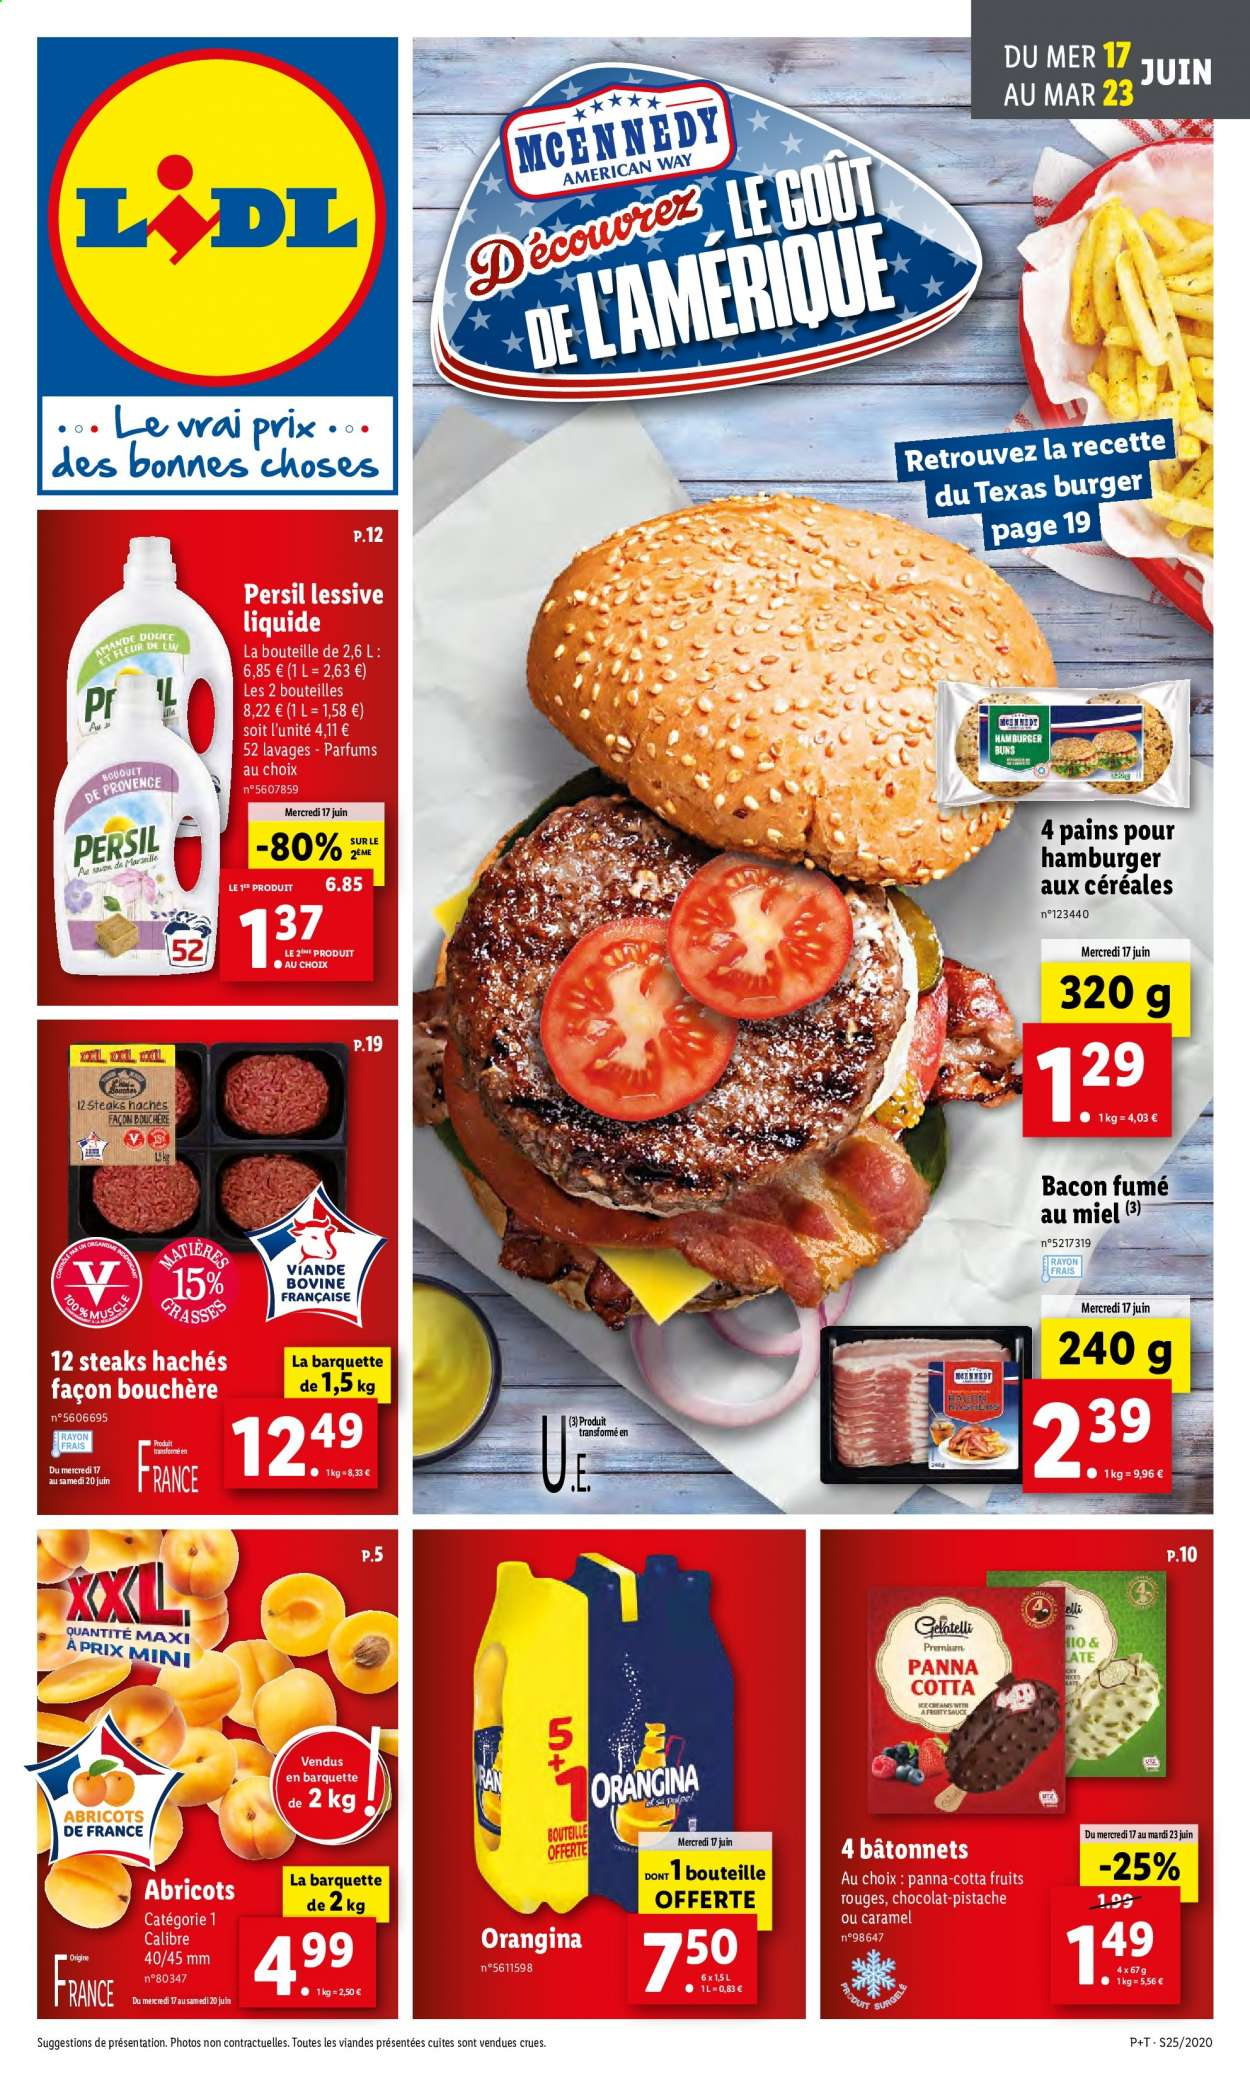 Catalogue Lidl - 17.06.2020 - 23.06.2020. Page 1.